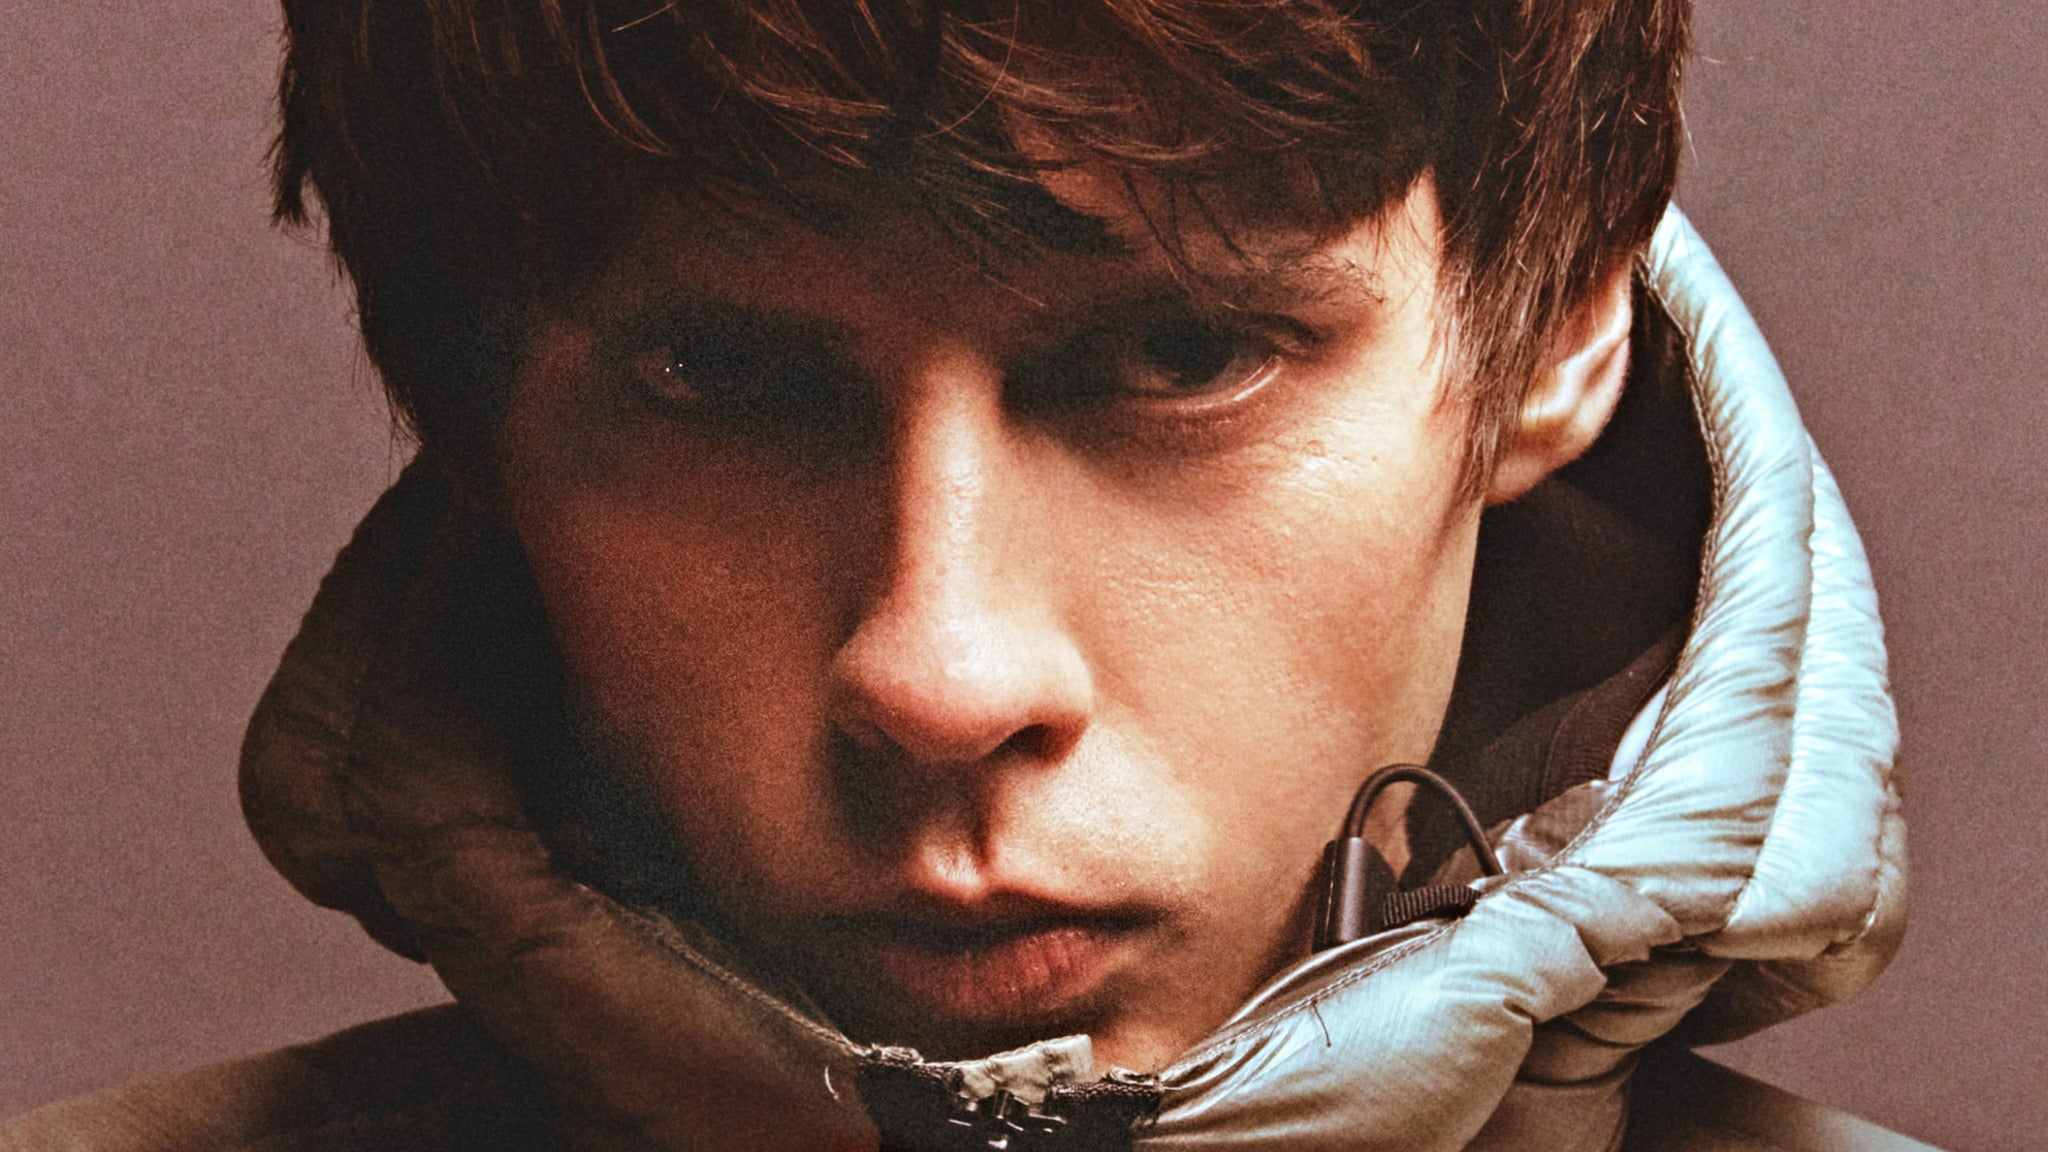 Image used with permission from Ticketmaster | Jake Bugg tickets